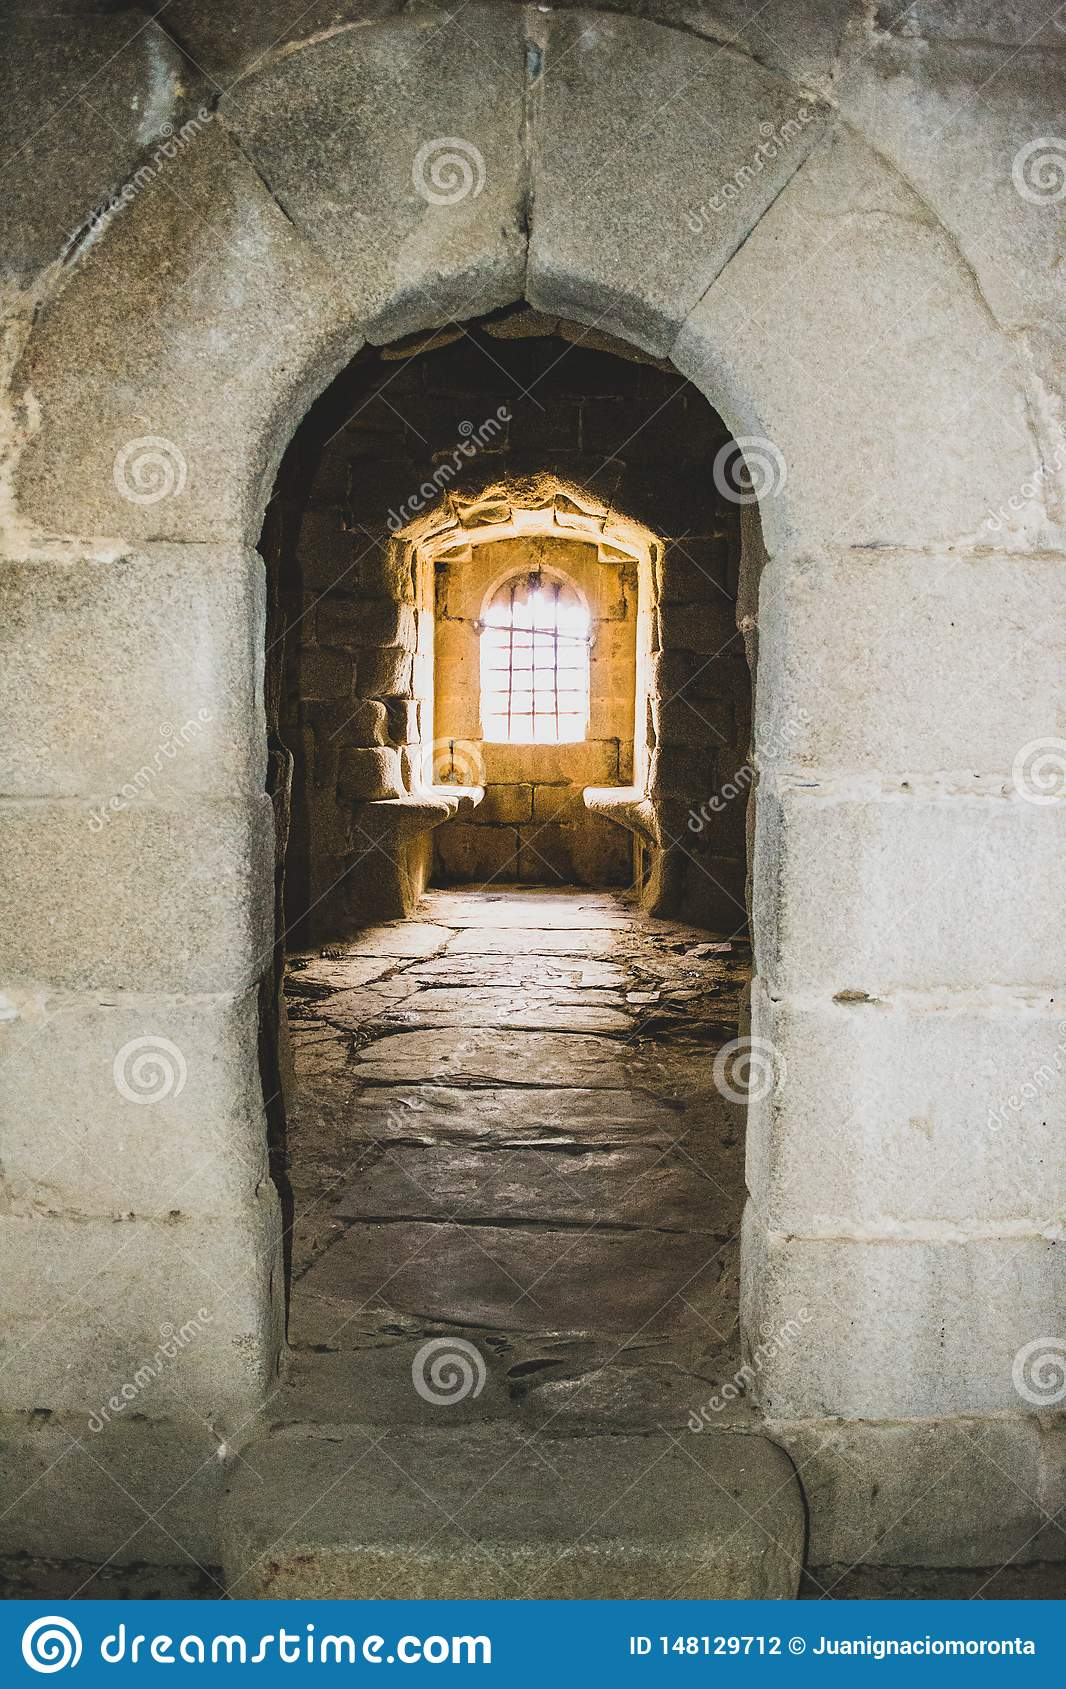 interior window of the castle in the abandoned village